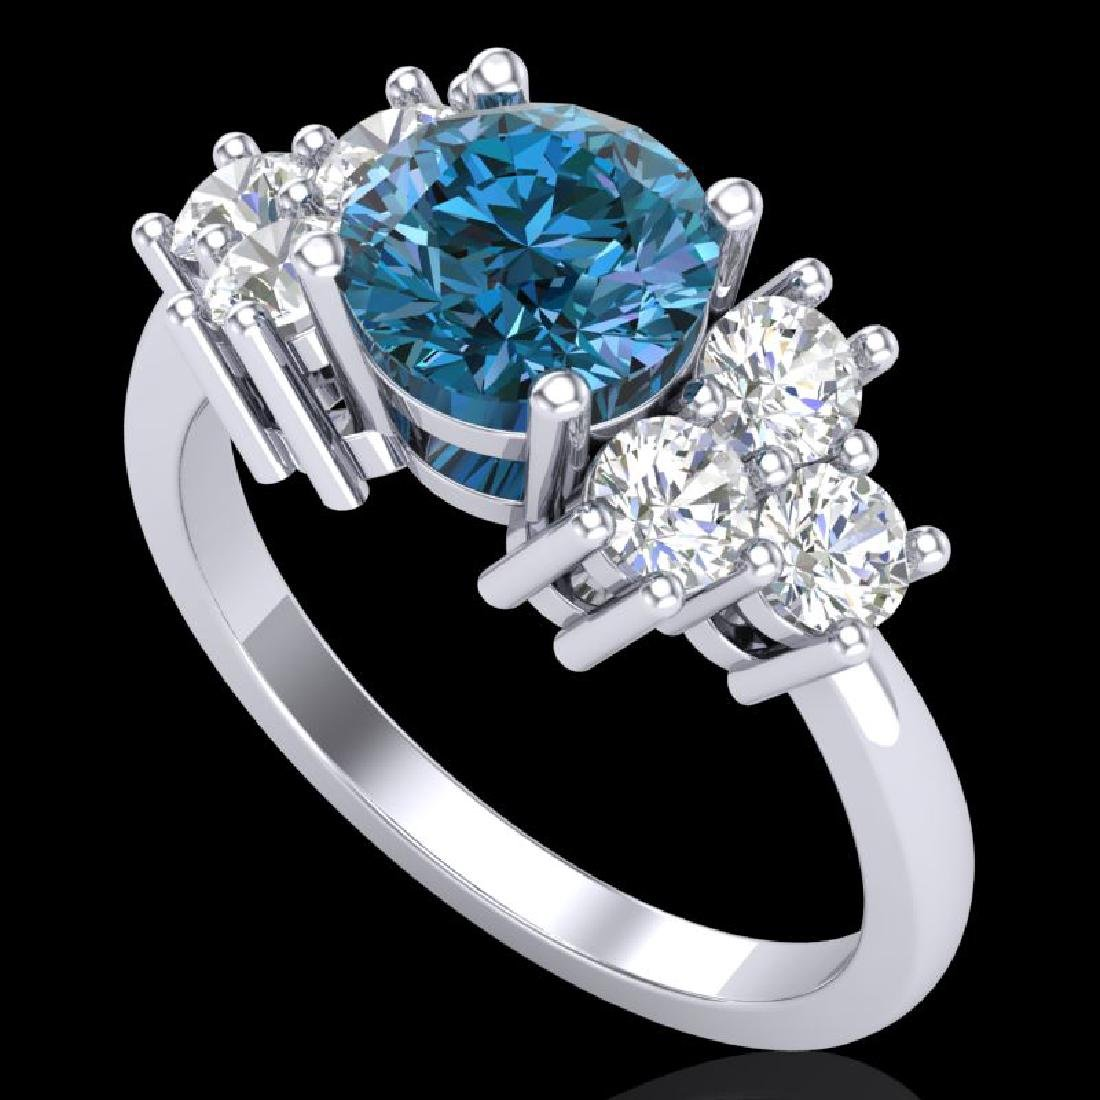 2.1 CTW Intense Blue Diamond Solitaire Engagment